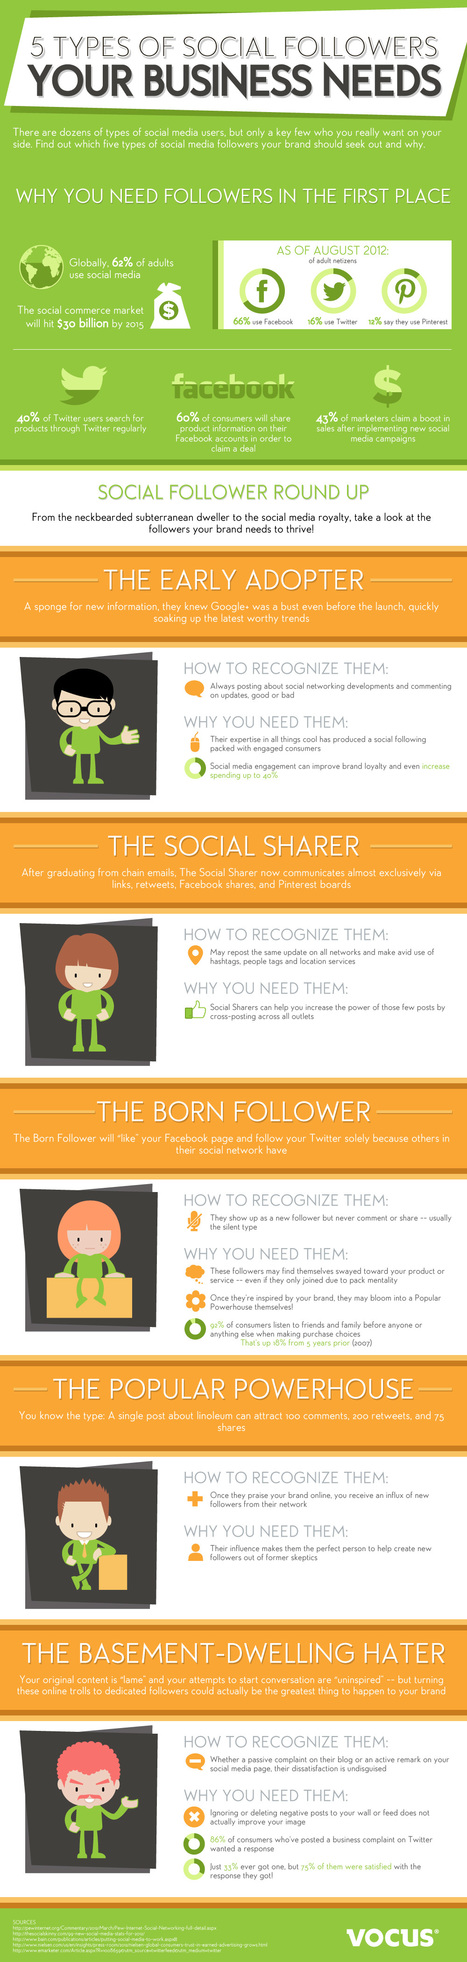 The 5 Types of Social Followers that Every Business Needs [INFOGRAPHIC] | DV8 Digital Marketing Tips and Insight | Scoop.it